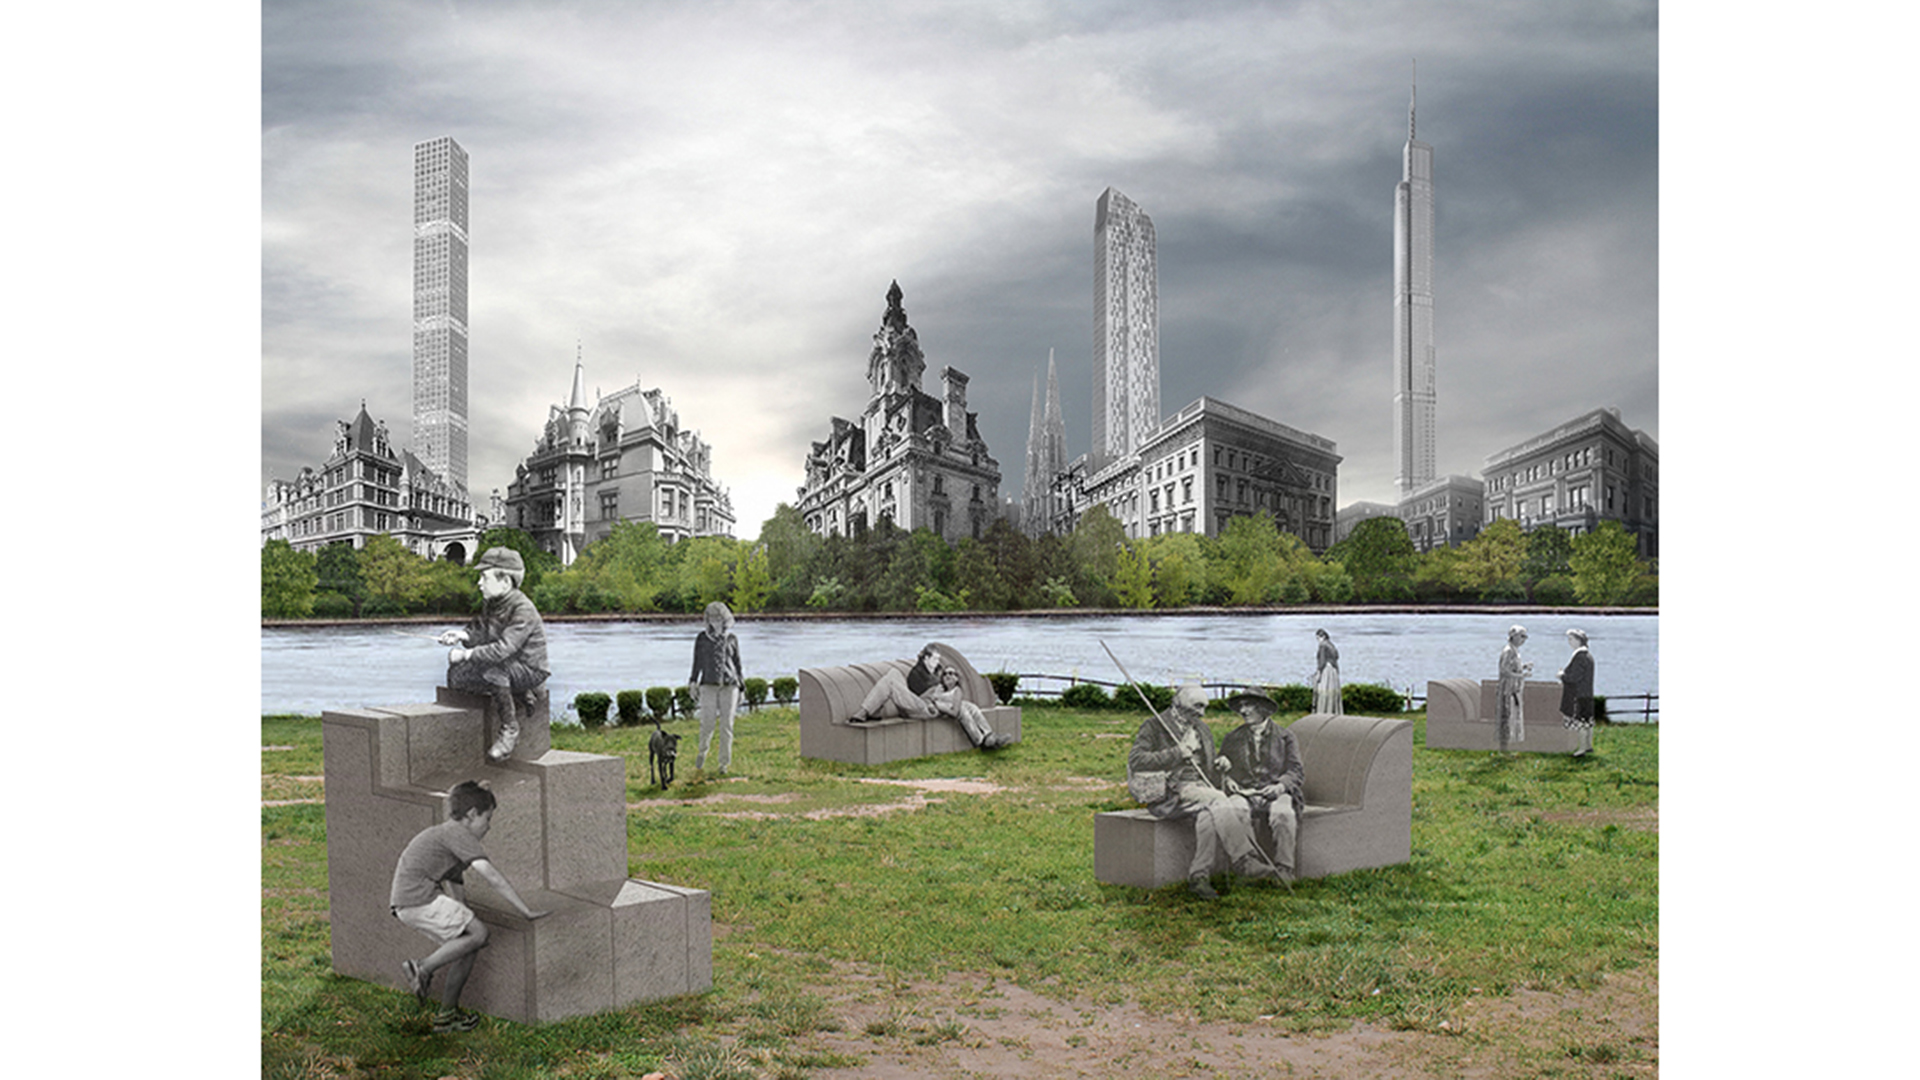 Photo collage of people in park against imagined New York skyline